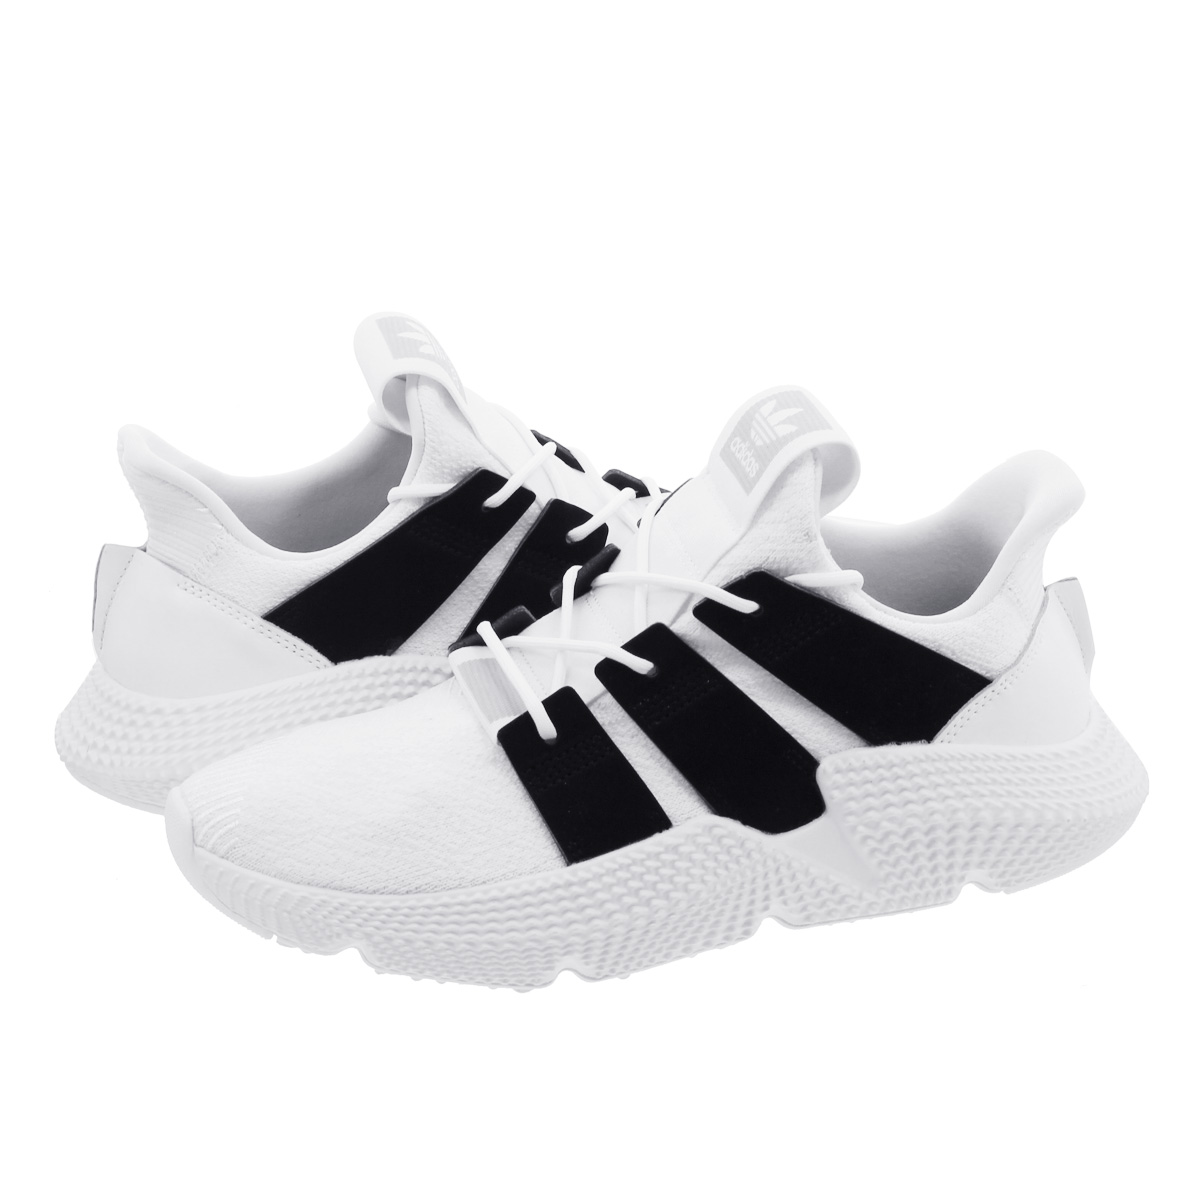 57404943bcc3d adidas PROPHERE Adidas pro Fear RUNNING WHITE/CORE BLACK/SHOCK LIME d96727  ...